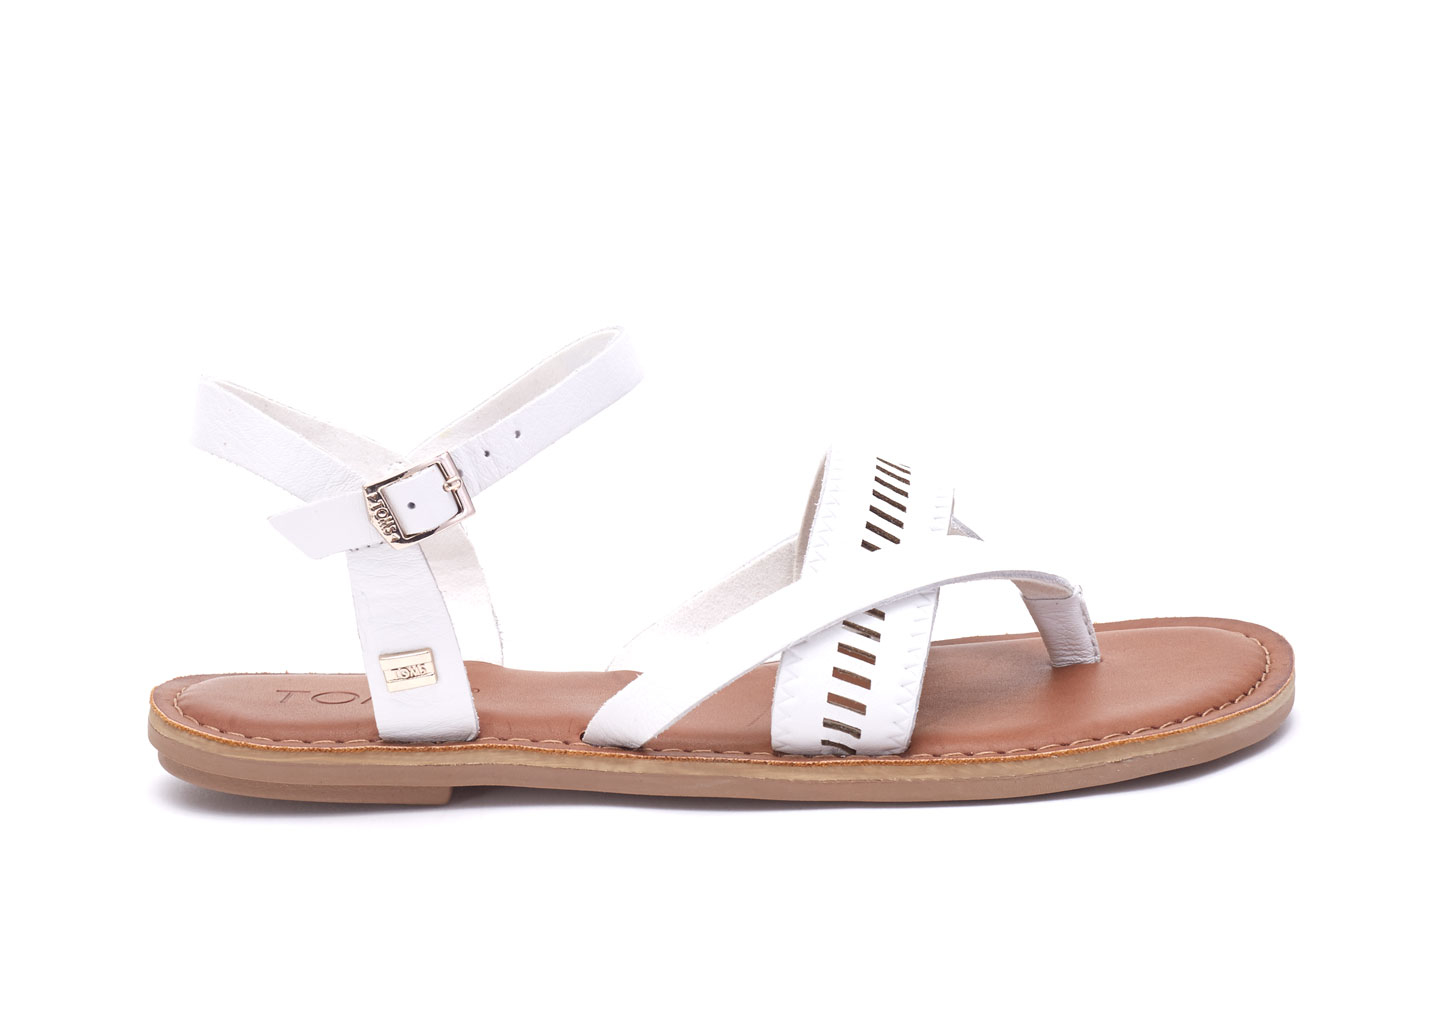 43d1b26d83a Lyst - TOMS White Leather Women s Lexie Sandals in White